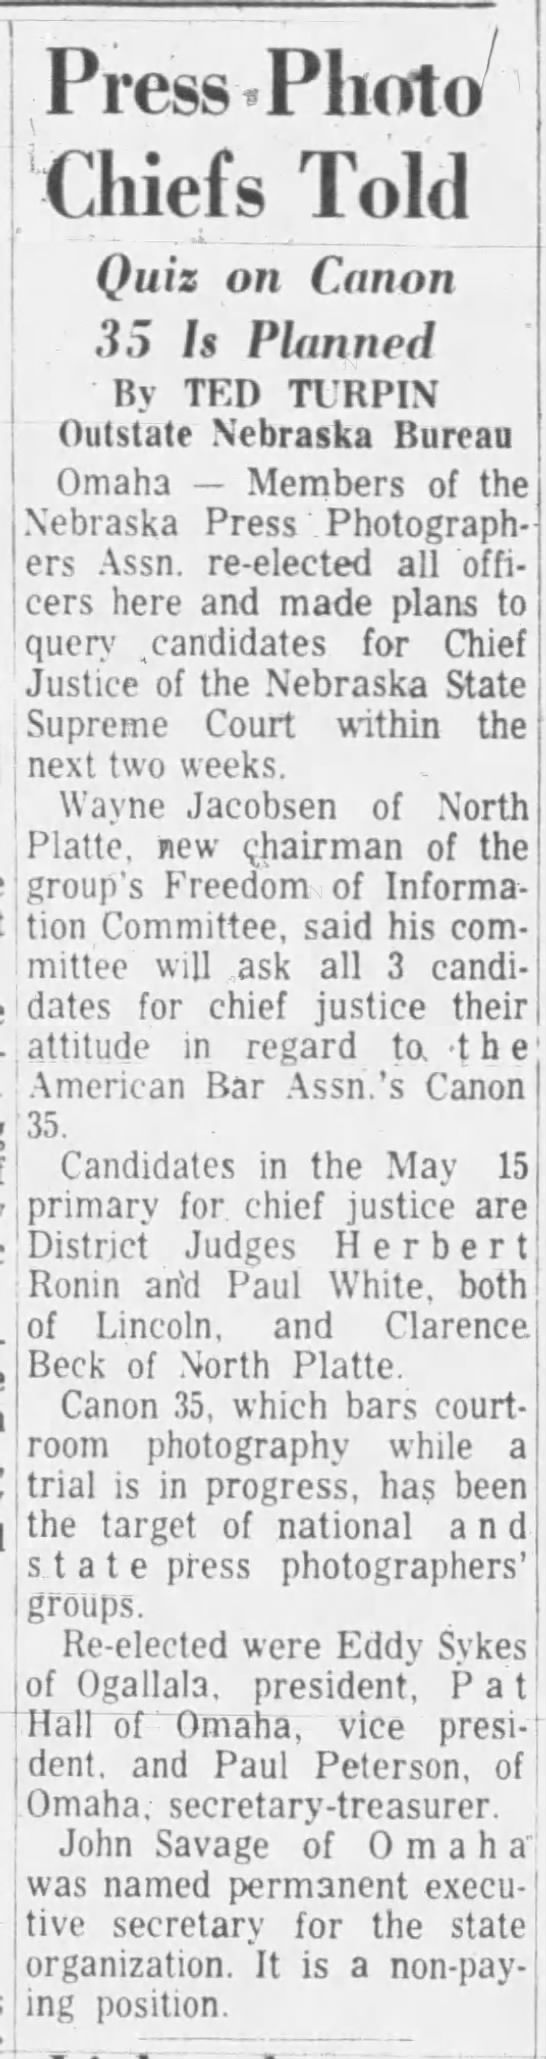 Turpin, Ted. Press Photo Chiefs Told, Lincoln Journal Star (Lincoln, Nebraska) 30 Apr 1961, page 22 -